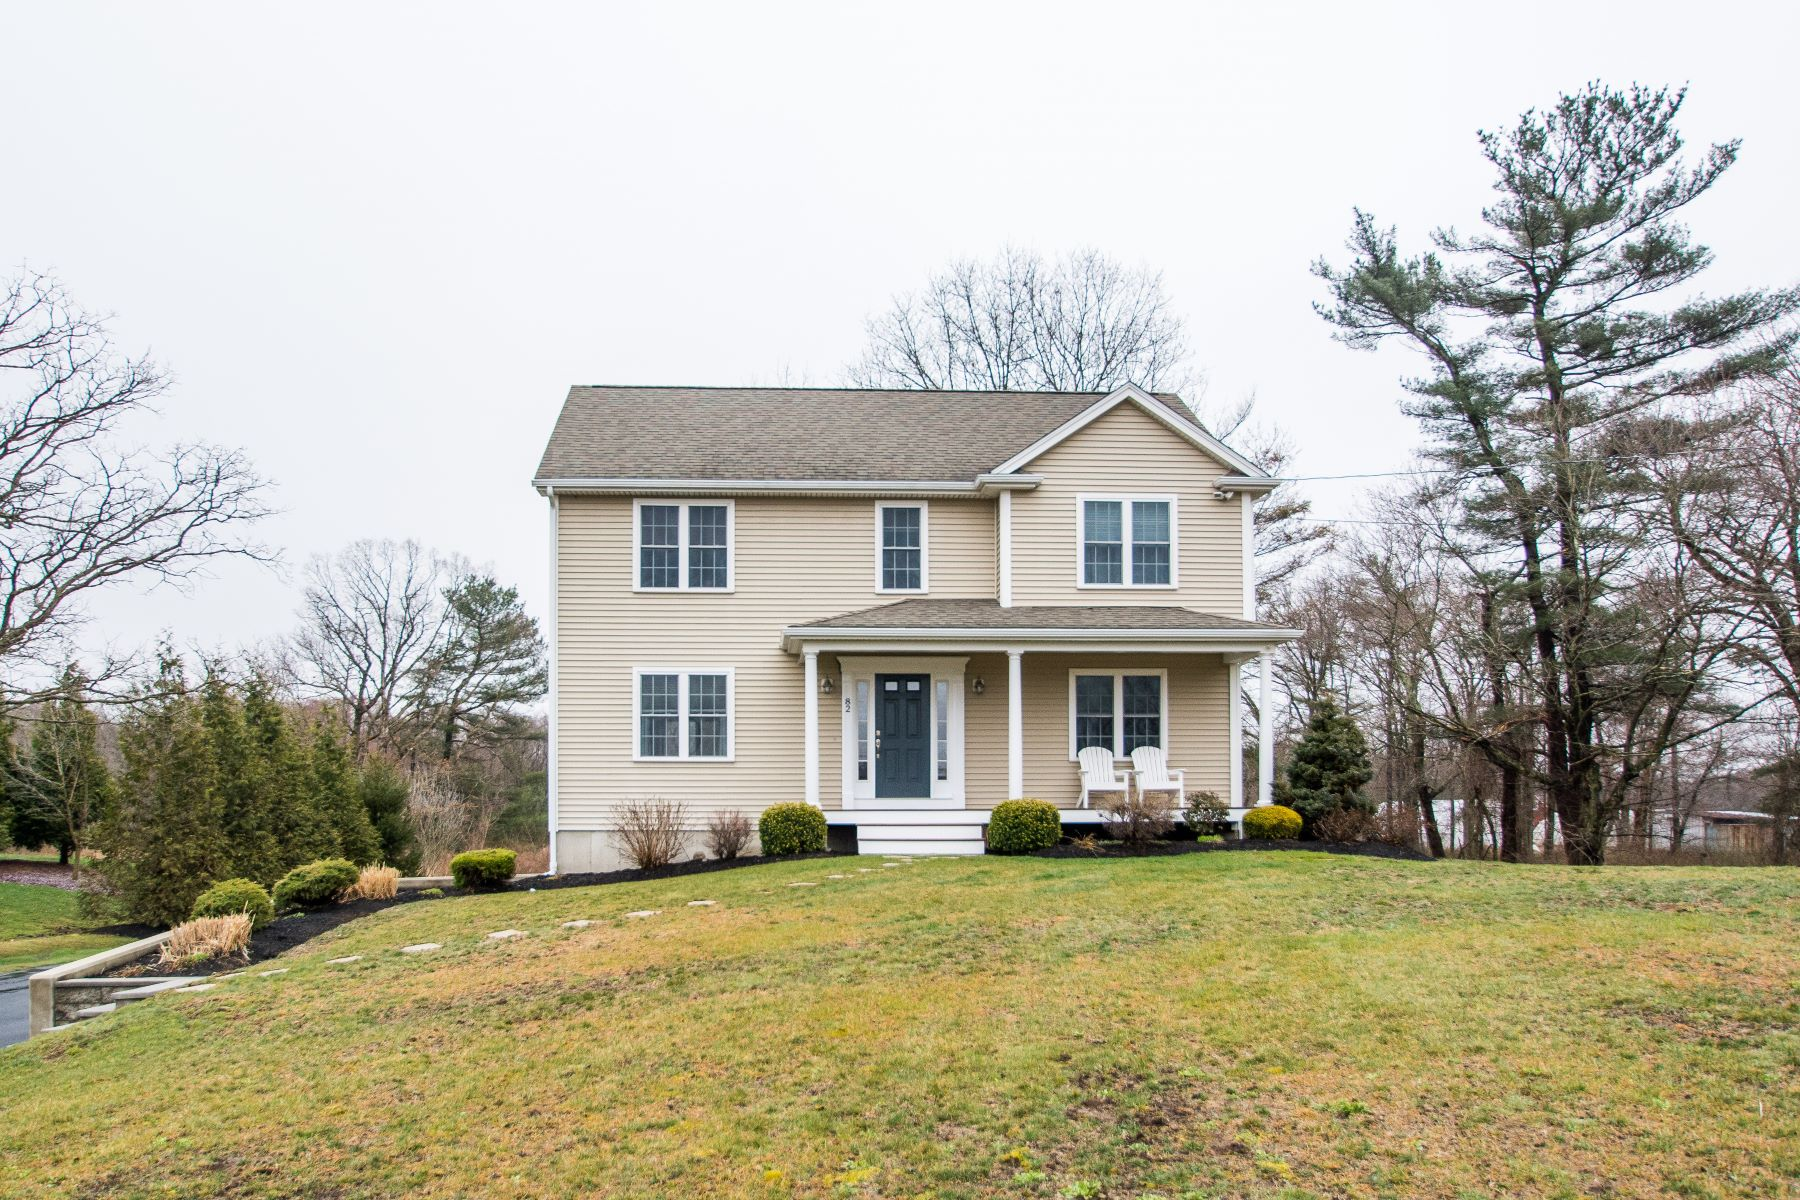 Single Family Homes for Active at 82 Almeida Rd., Rehoboth, MA 82 Almeida Rd. Rehoboth, Massachusetts 02769 United States